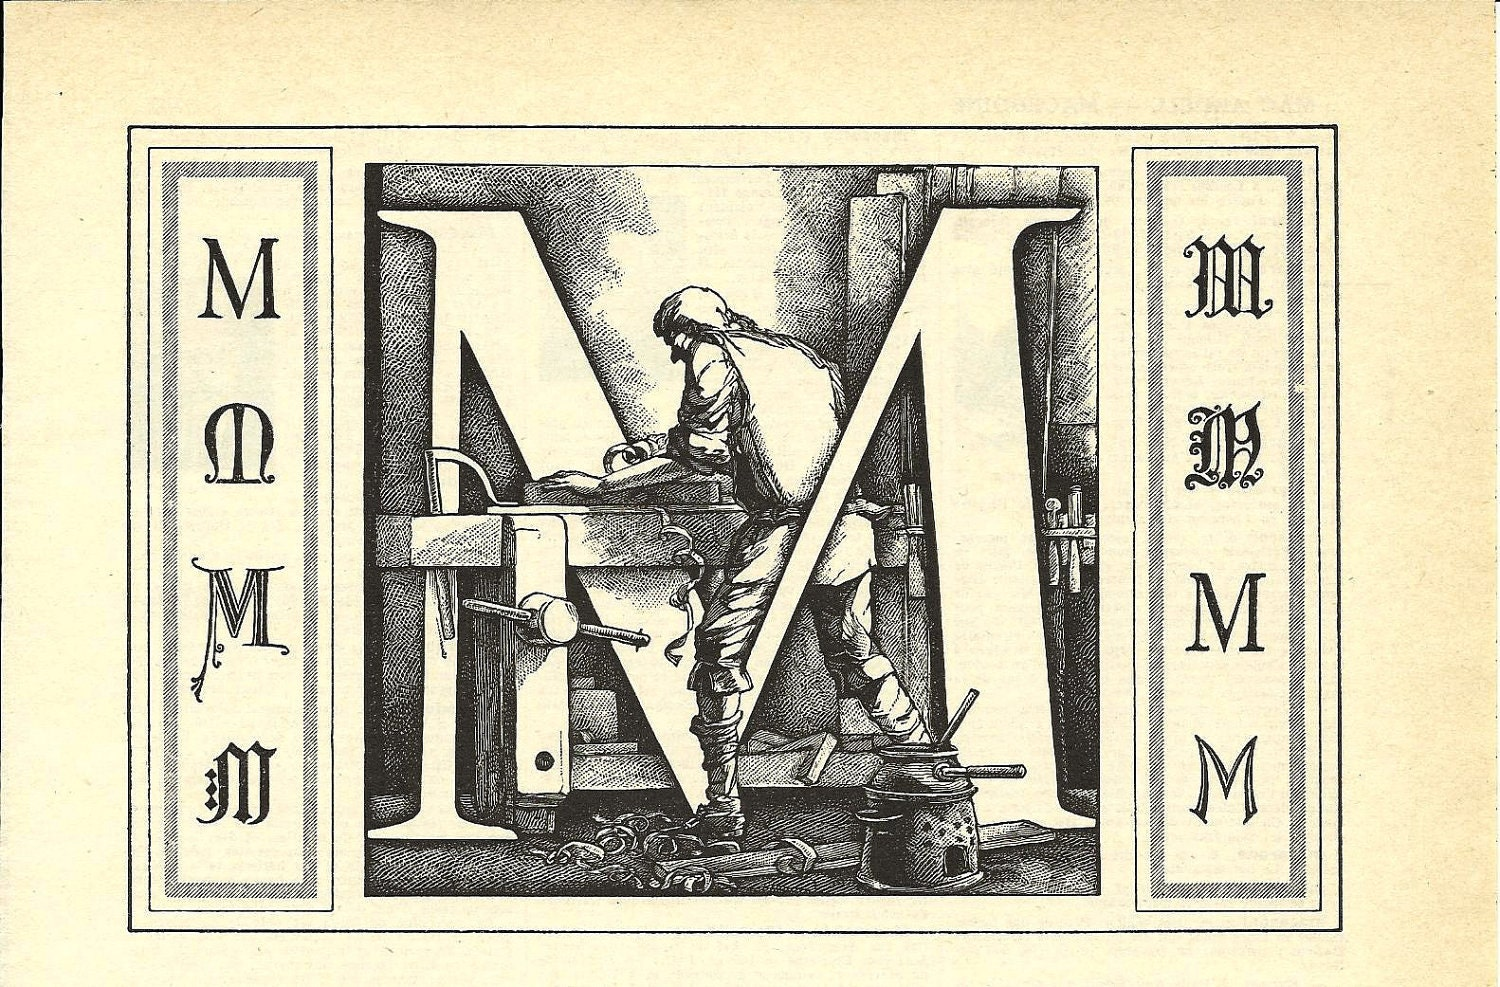 Letter M Calligraphy French Dictionary Illustration 1950